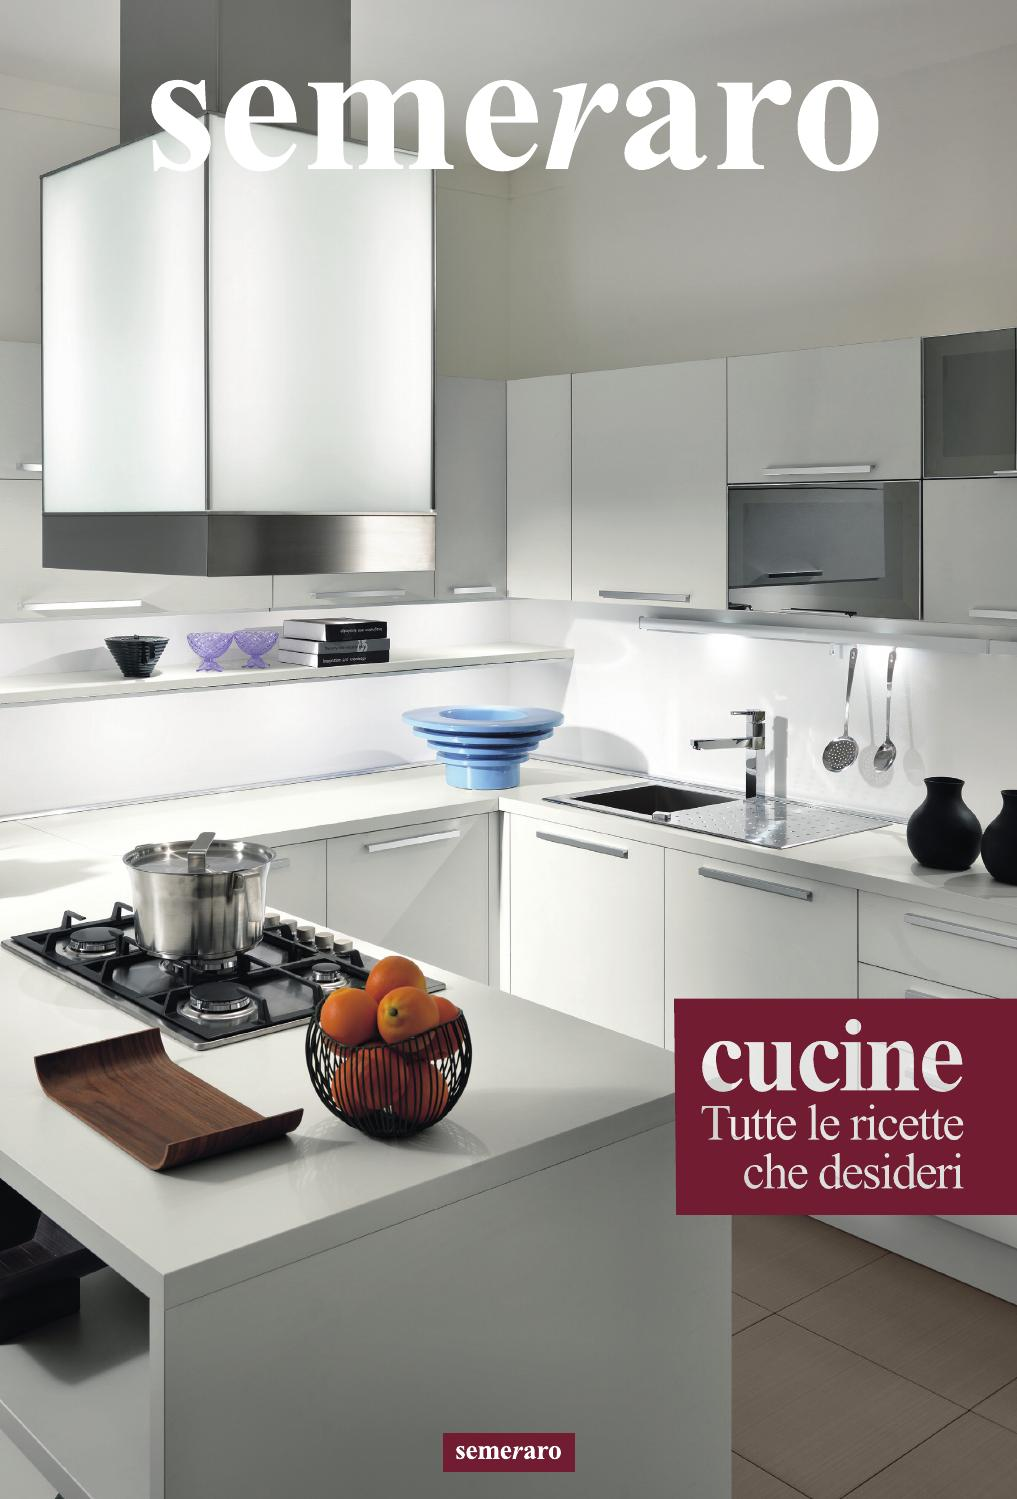 Semeraro cucine 2016 by semeraro issuu for Cucine catalogo